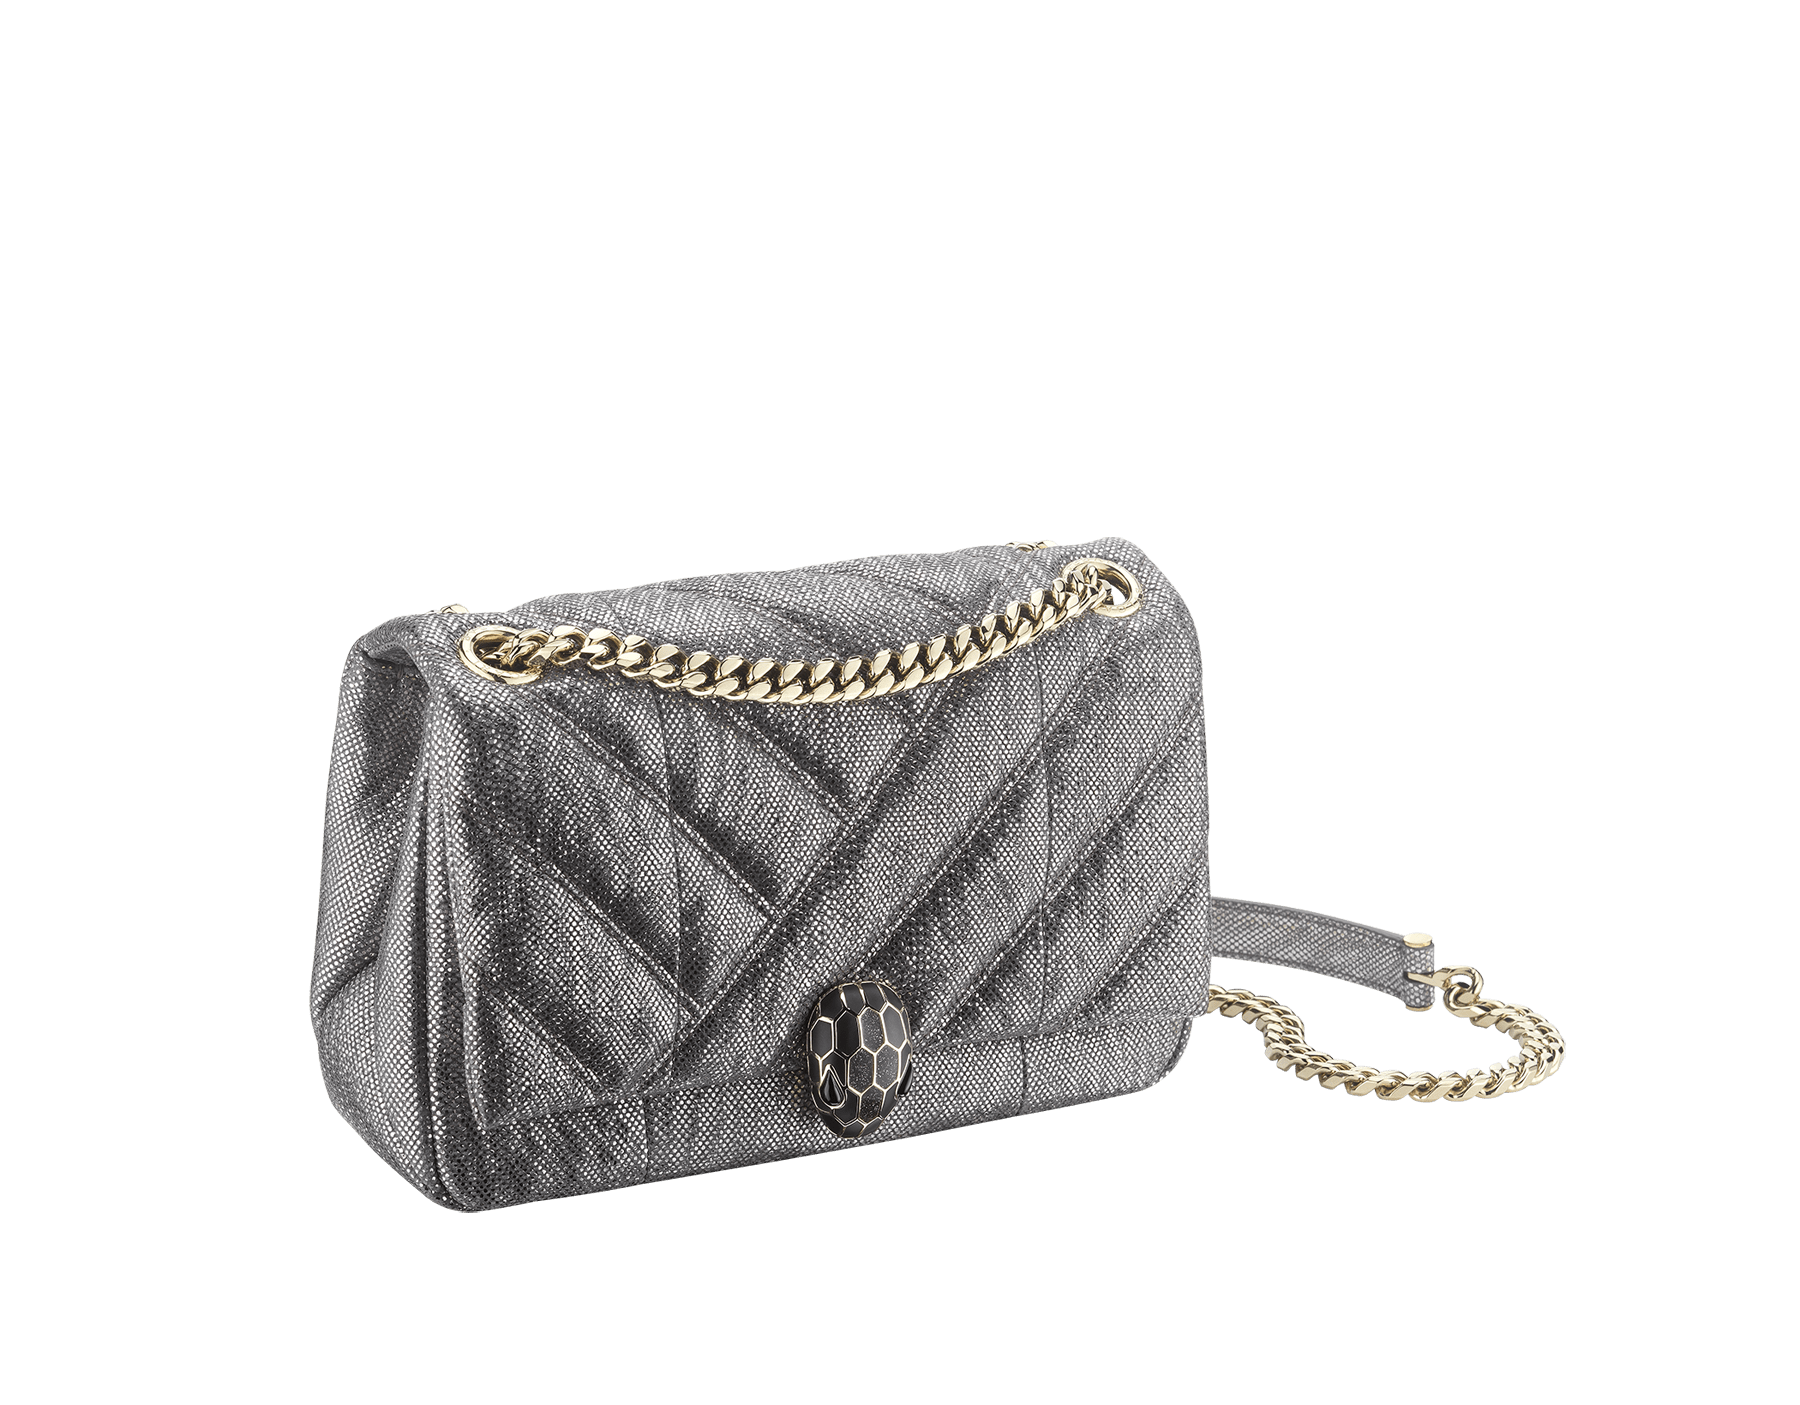 Serpenti Cabochon shoulder bag in soft matelassé charcoal diamond metallic karung skin with graphic motif. Snakehead closure in light gold plated brass decorated with matte black and glitter charcoal diamond enamel, and black onyx eyes. 290237 image 2